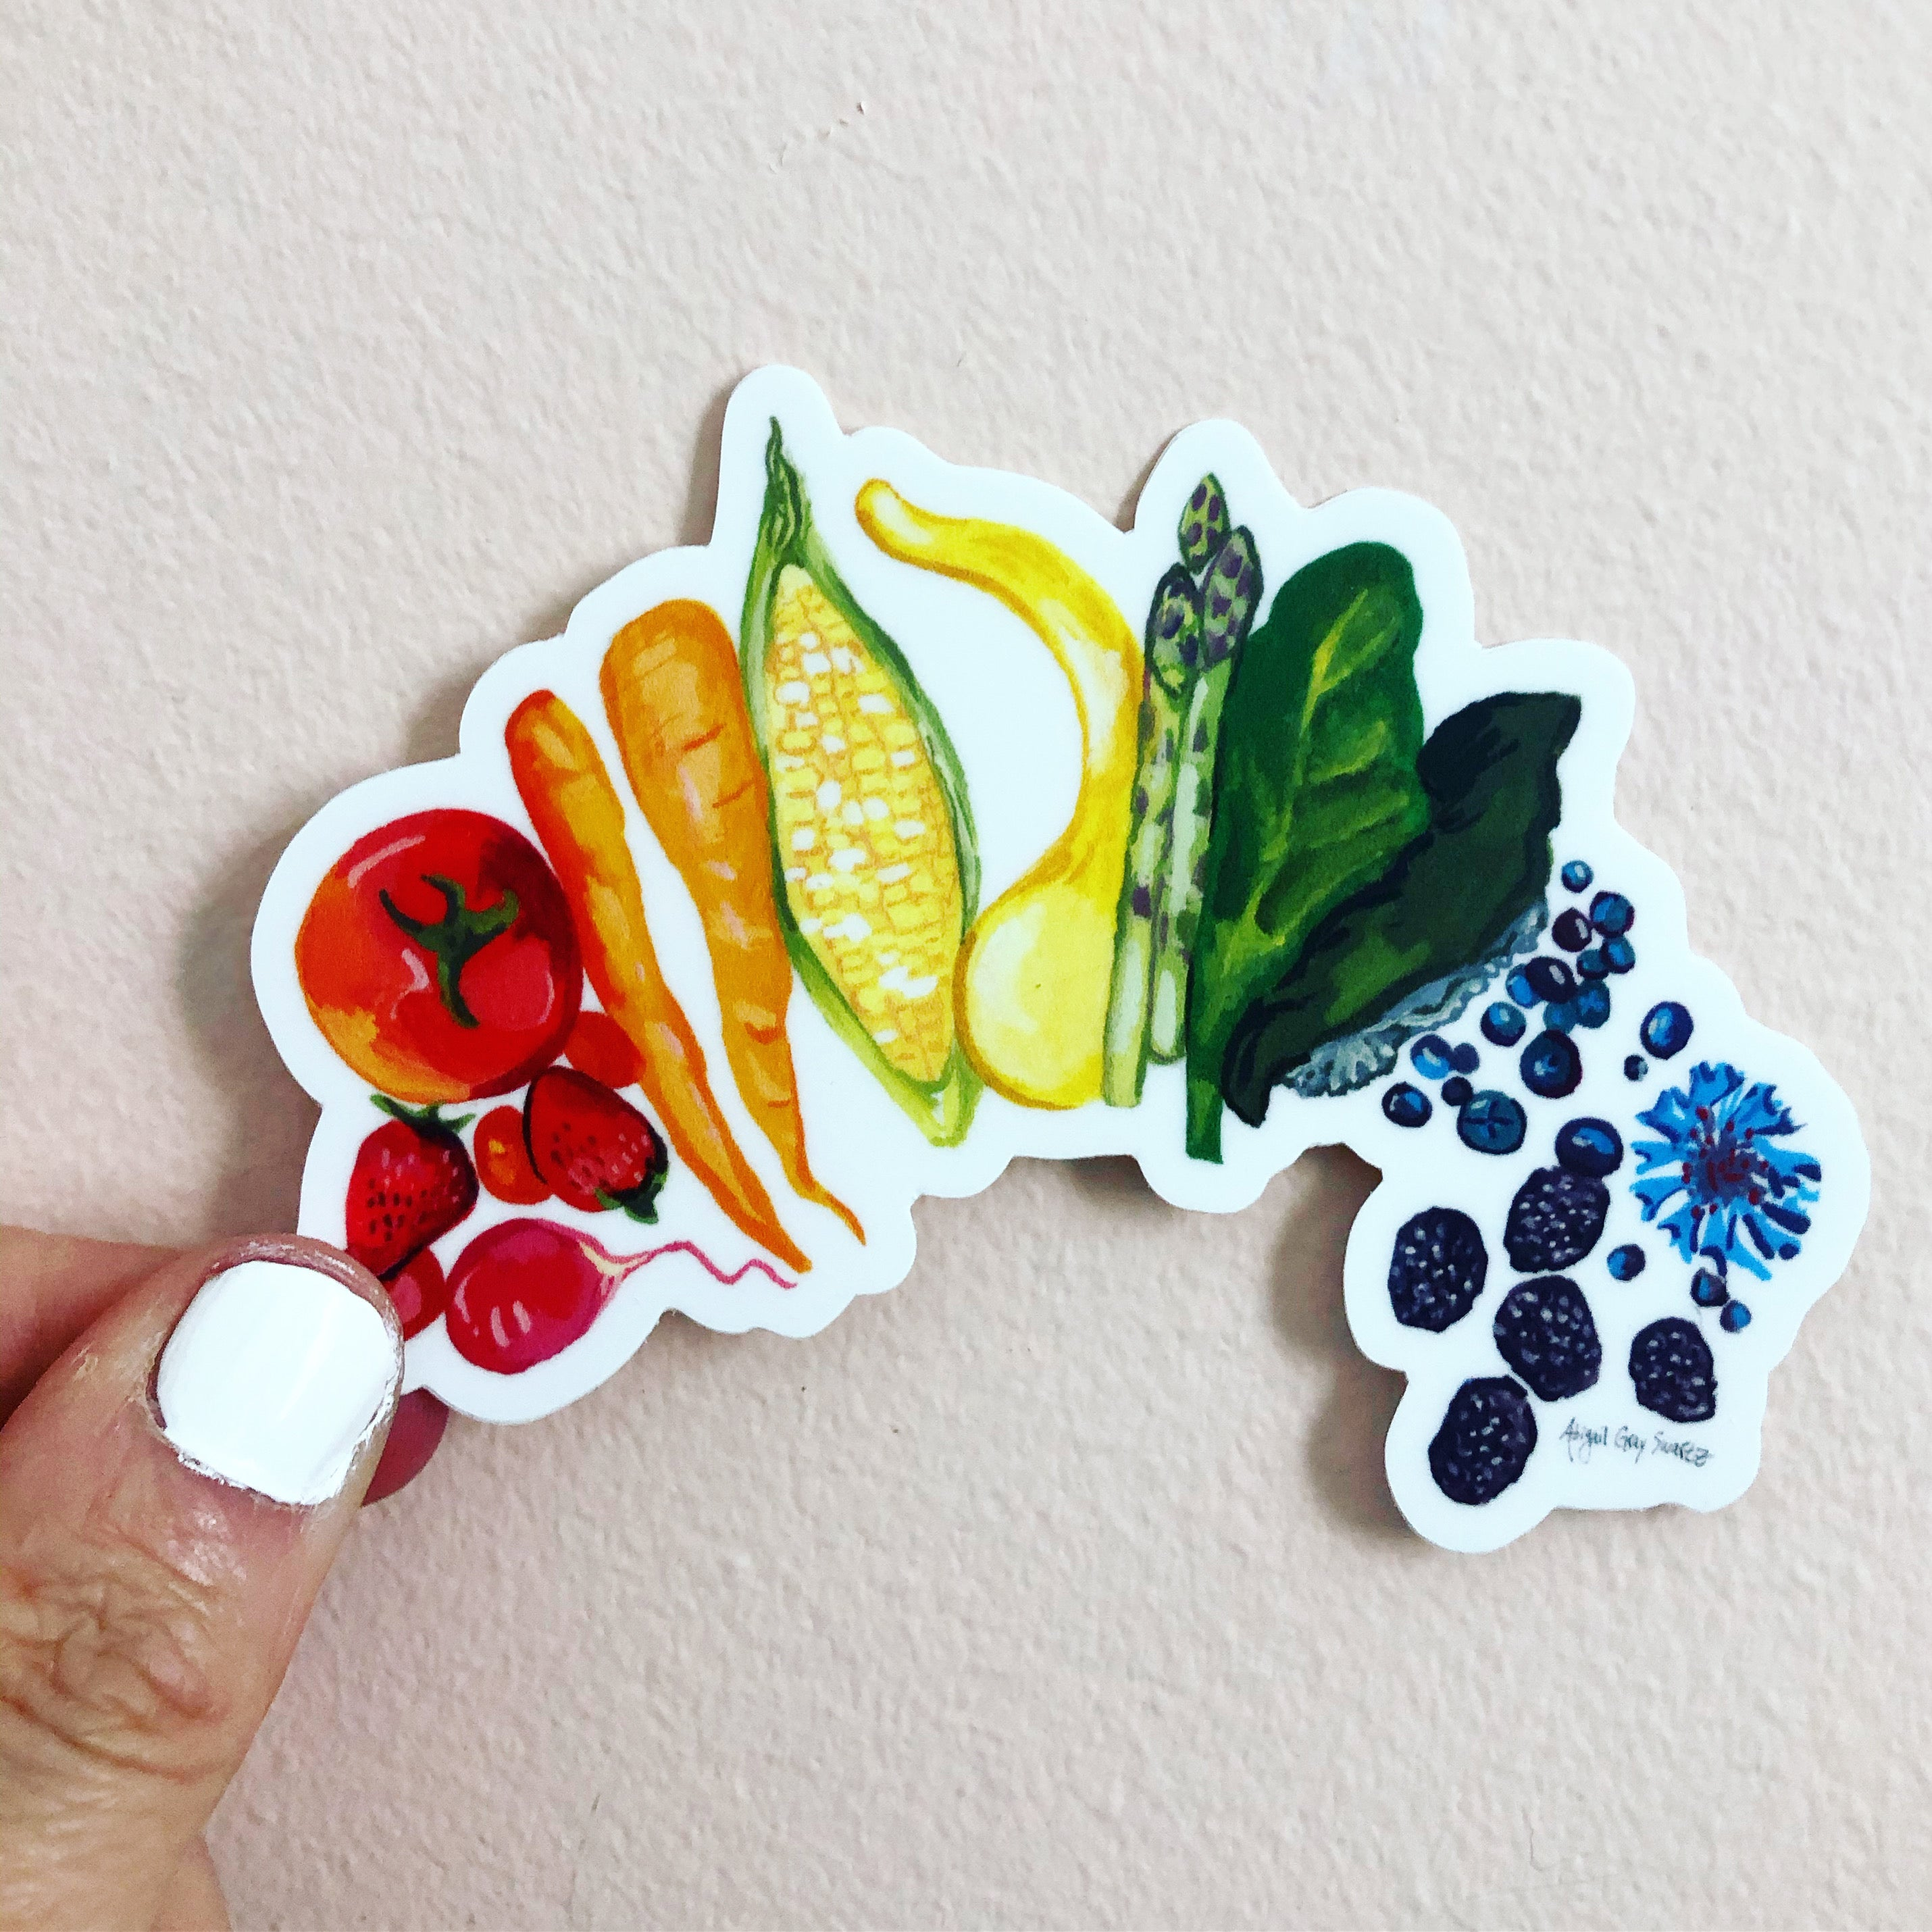 food rainbow sticker, healthy eating sticker, illustration sticker Abigail Gray Swartz